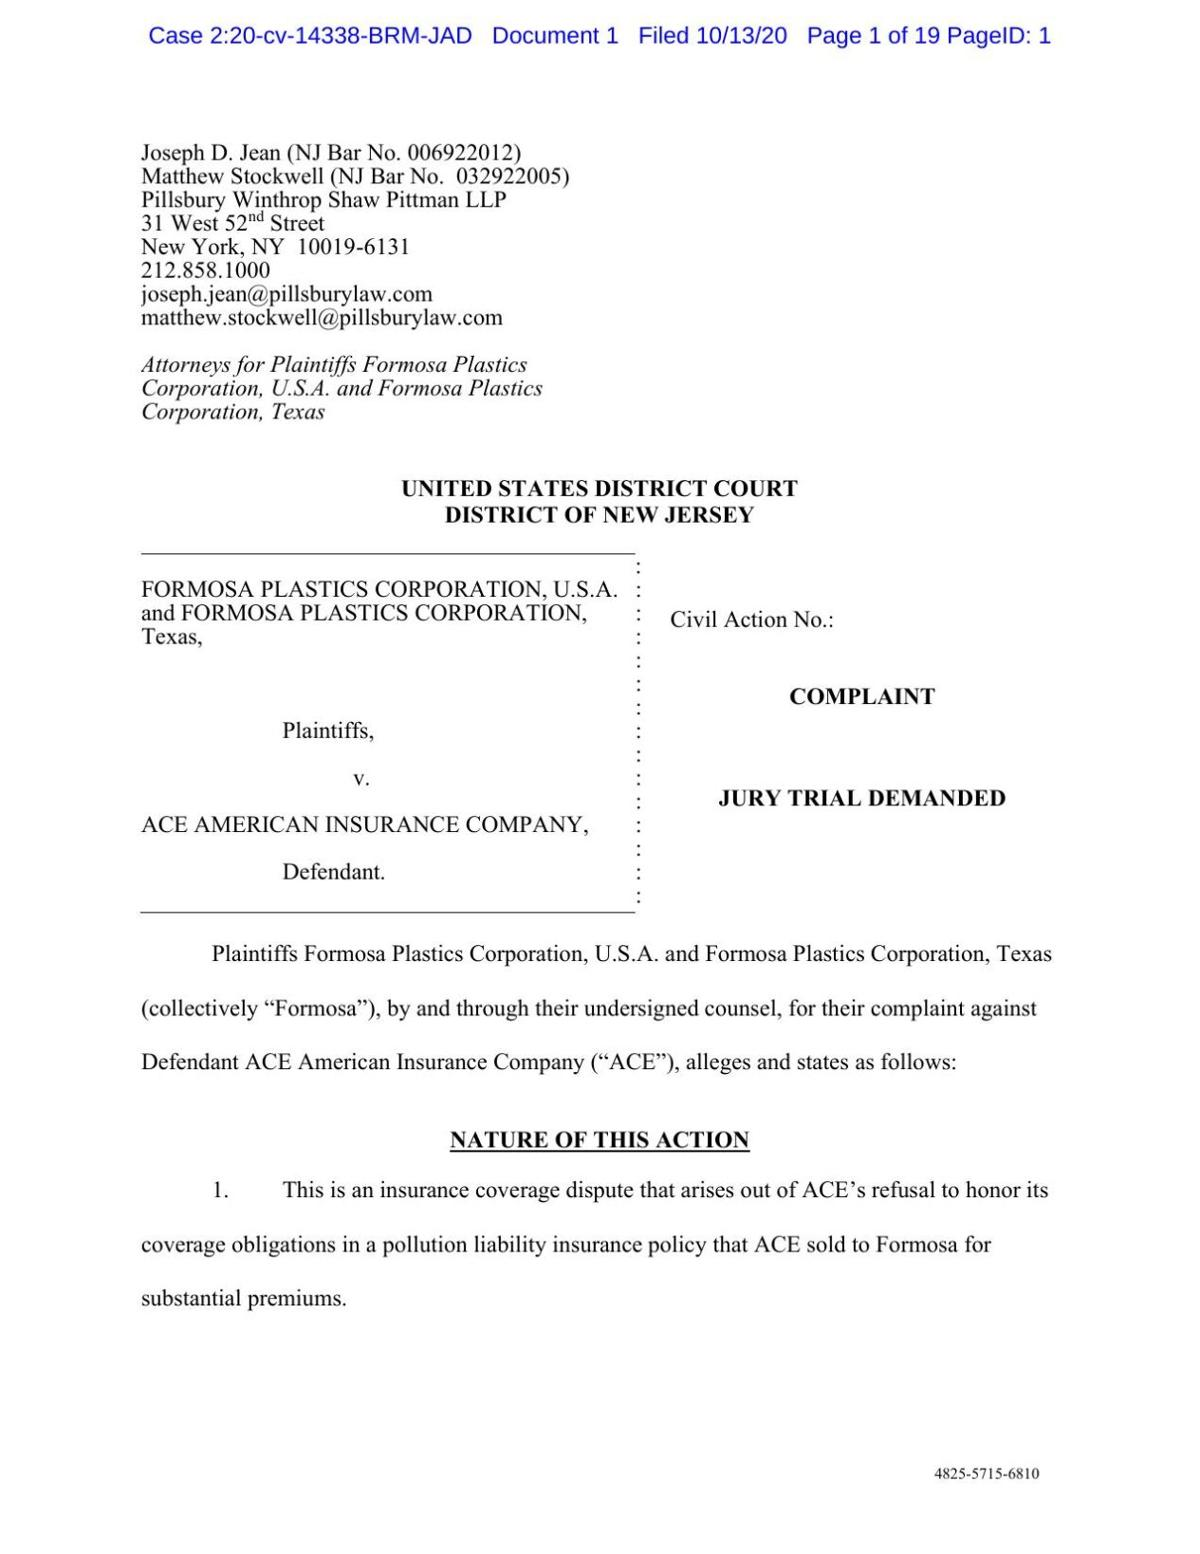 Lawsuit filed by Formosa